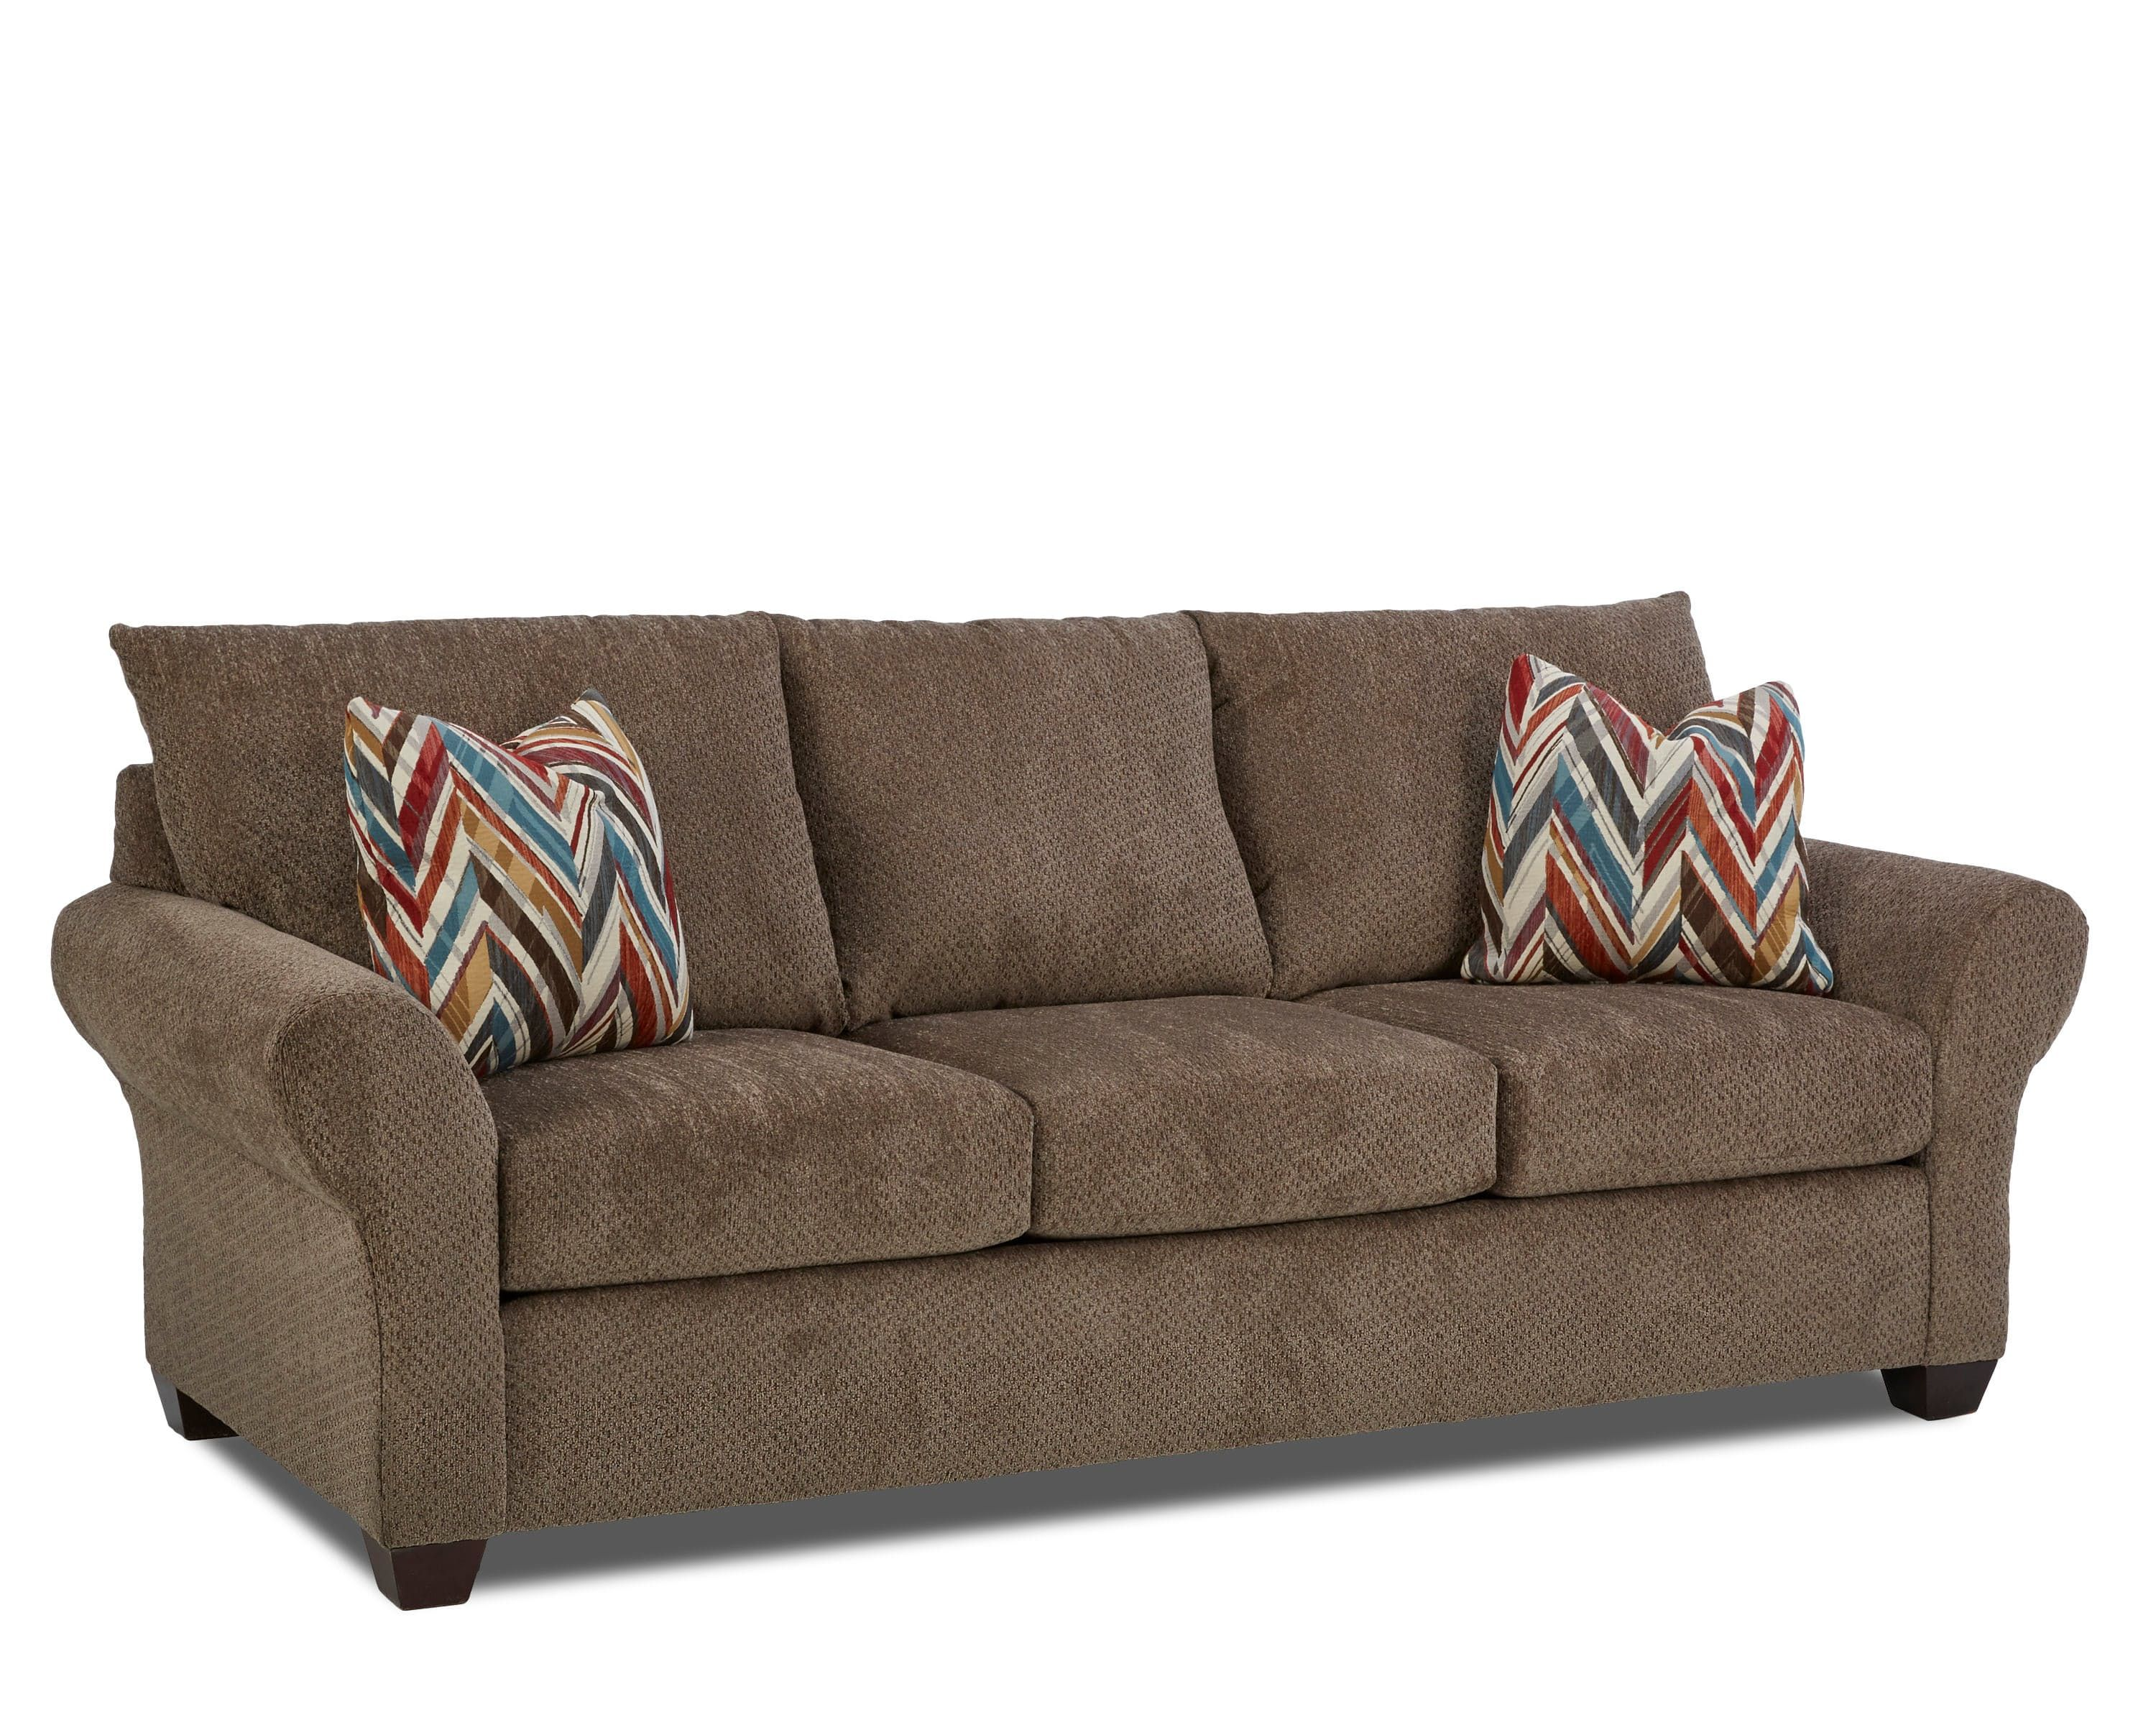 Width: Depth: Height: Shop For Klaussner Cedar Creek Sofa, S, And Other  Living Room Sofas At Klaussner Home Furnishings In Asheboro, North Carolina.